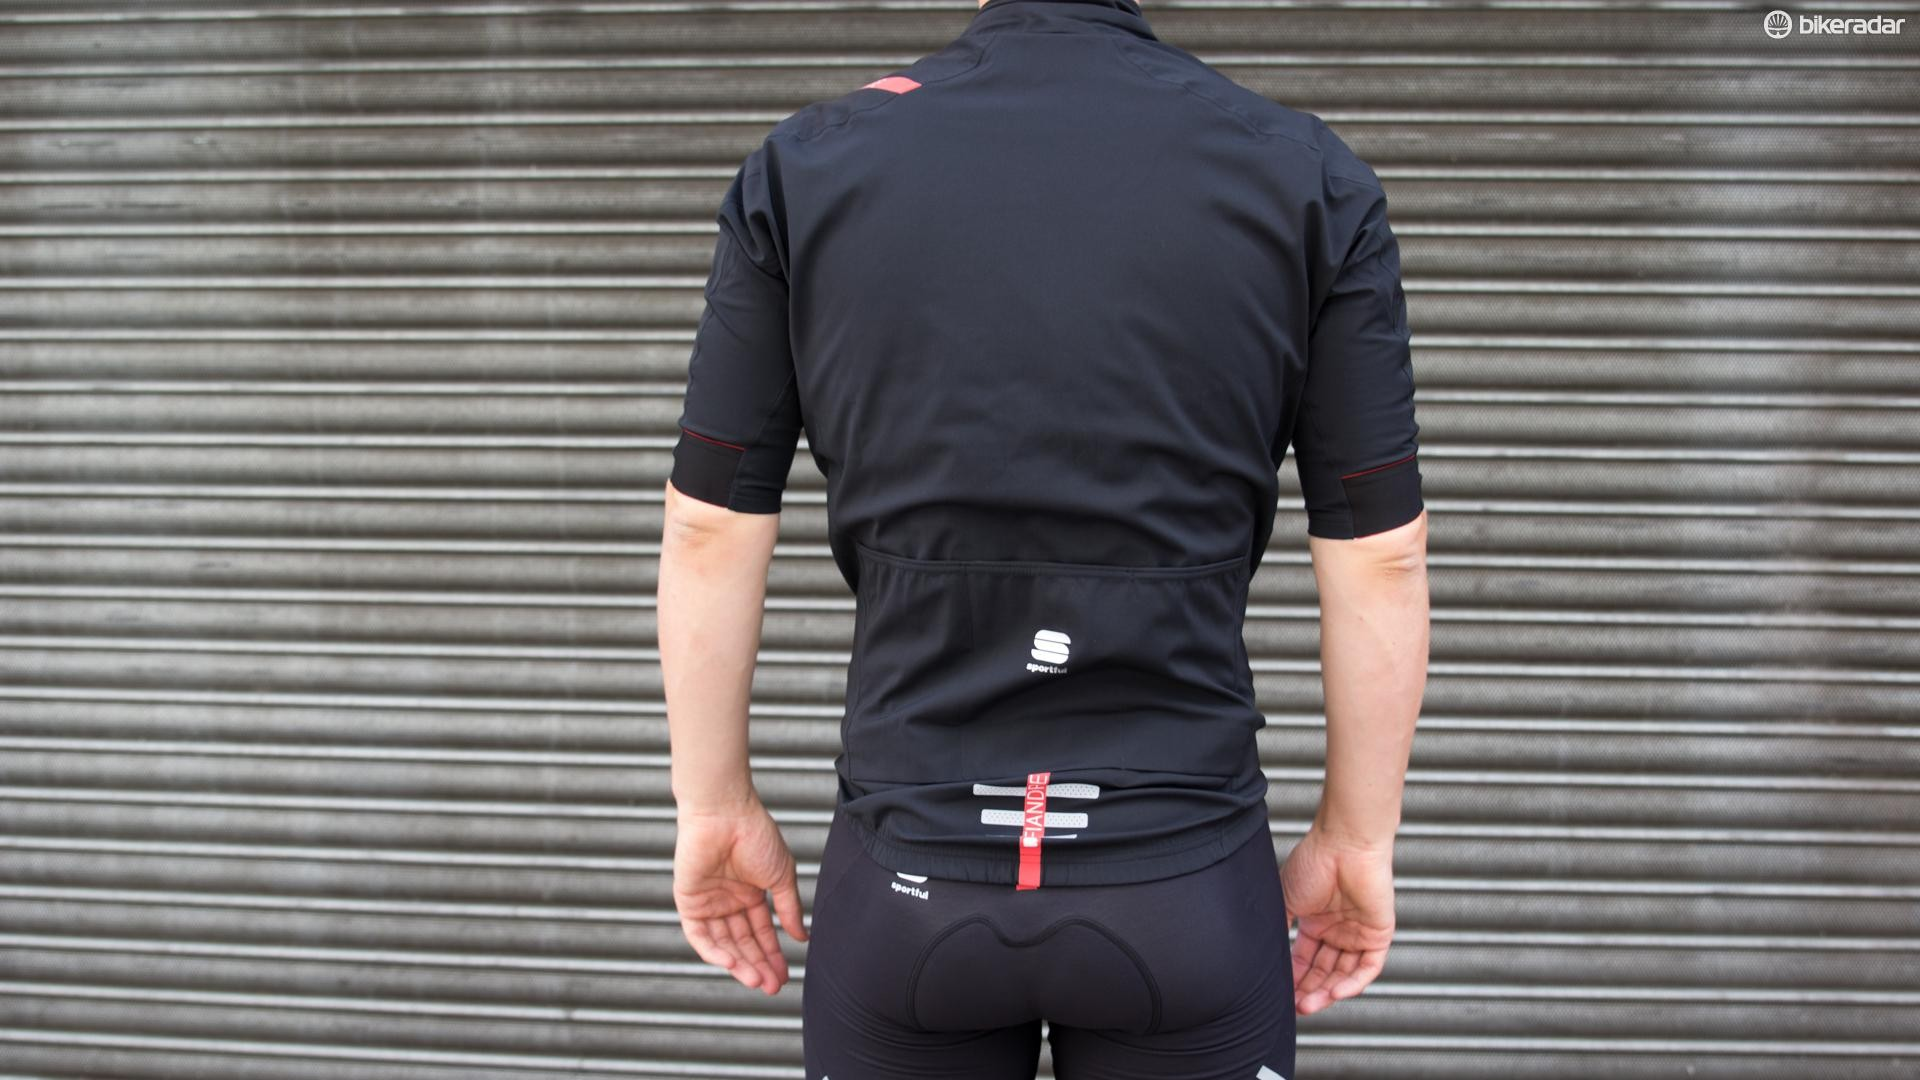 The jacket looks loose and bulky whilst standing, but fits brilliantly in a riding position